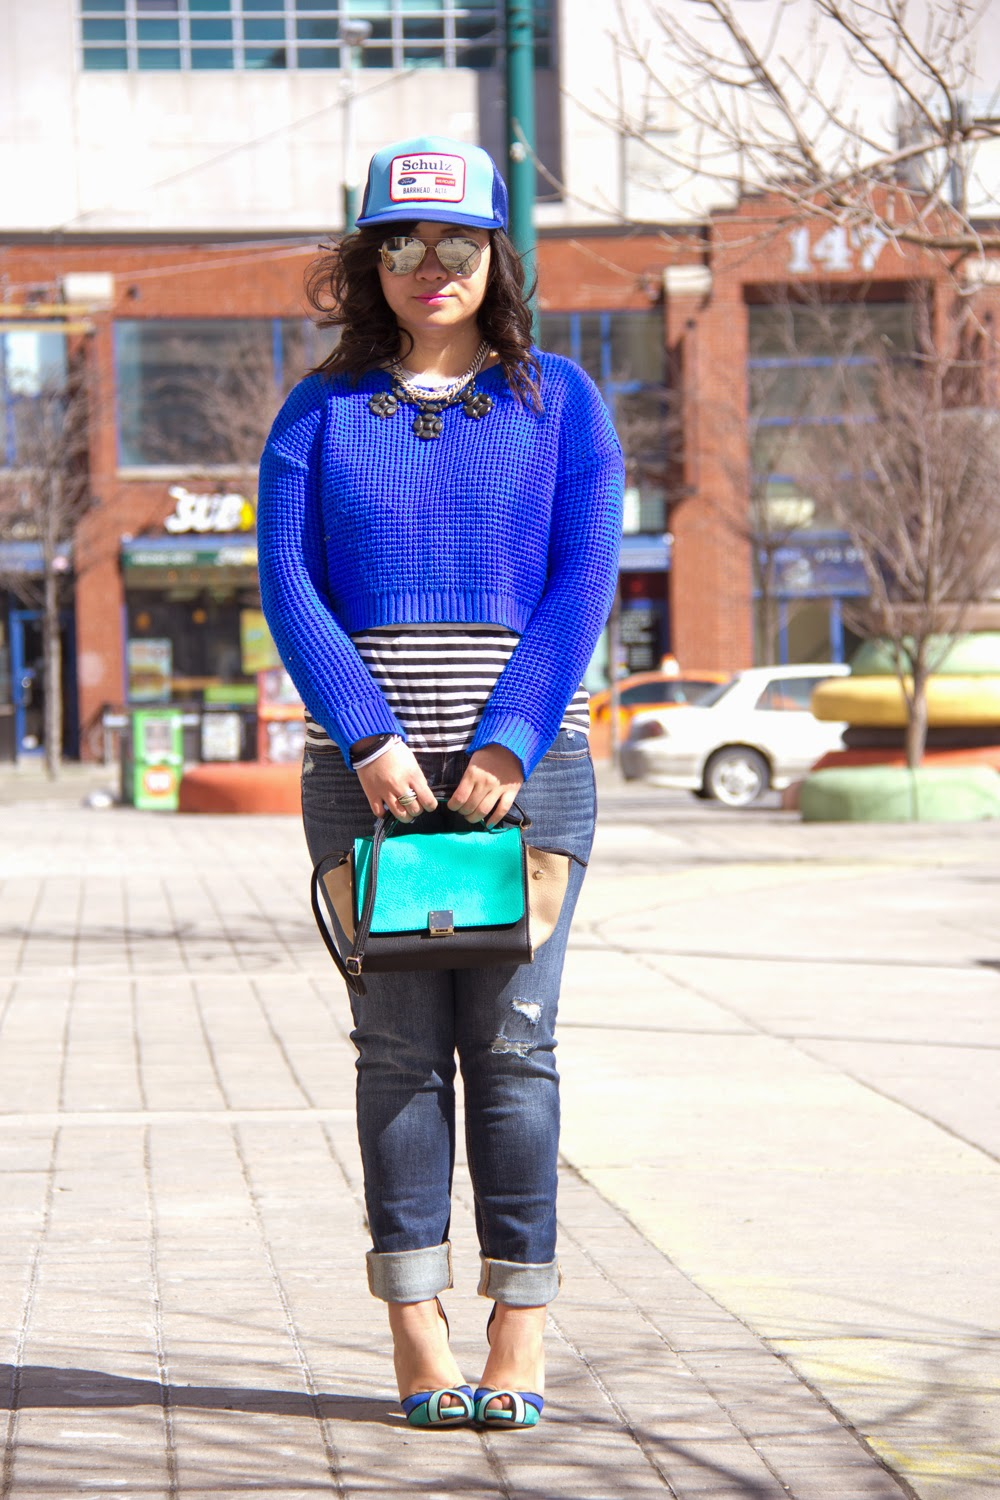 baseball-Cap, Street-Style, Neon-Blue-Crop-Top-Knit-Sweater, Boyfriend-Jeans, Stripe-Top